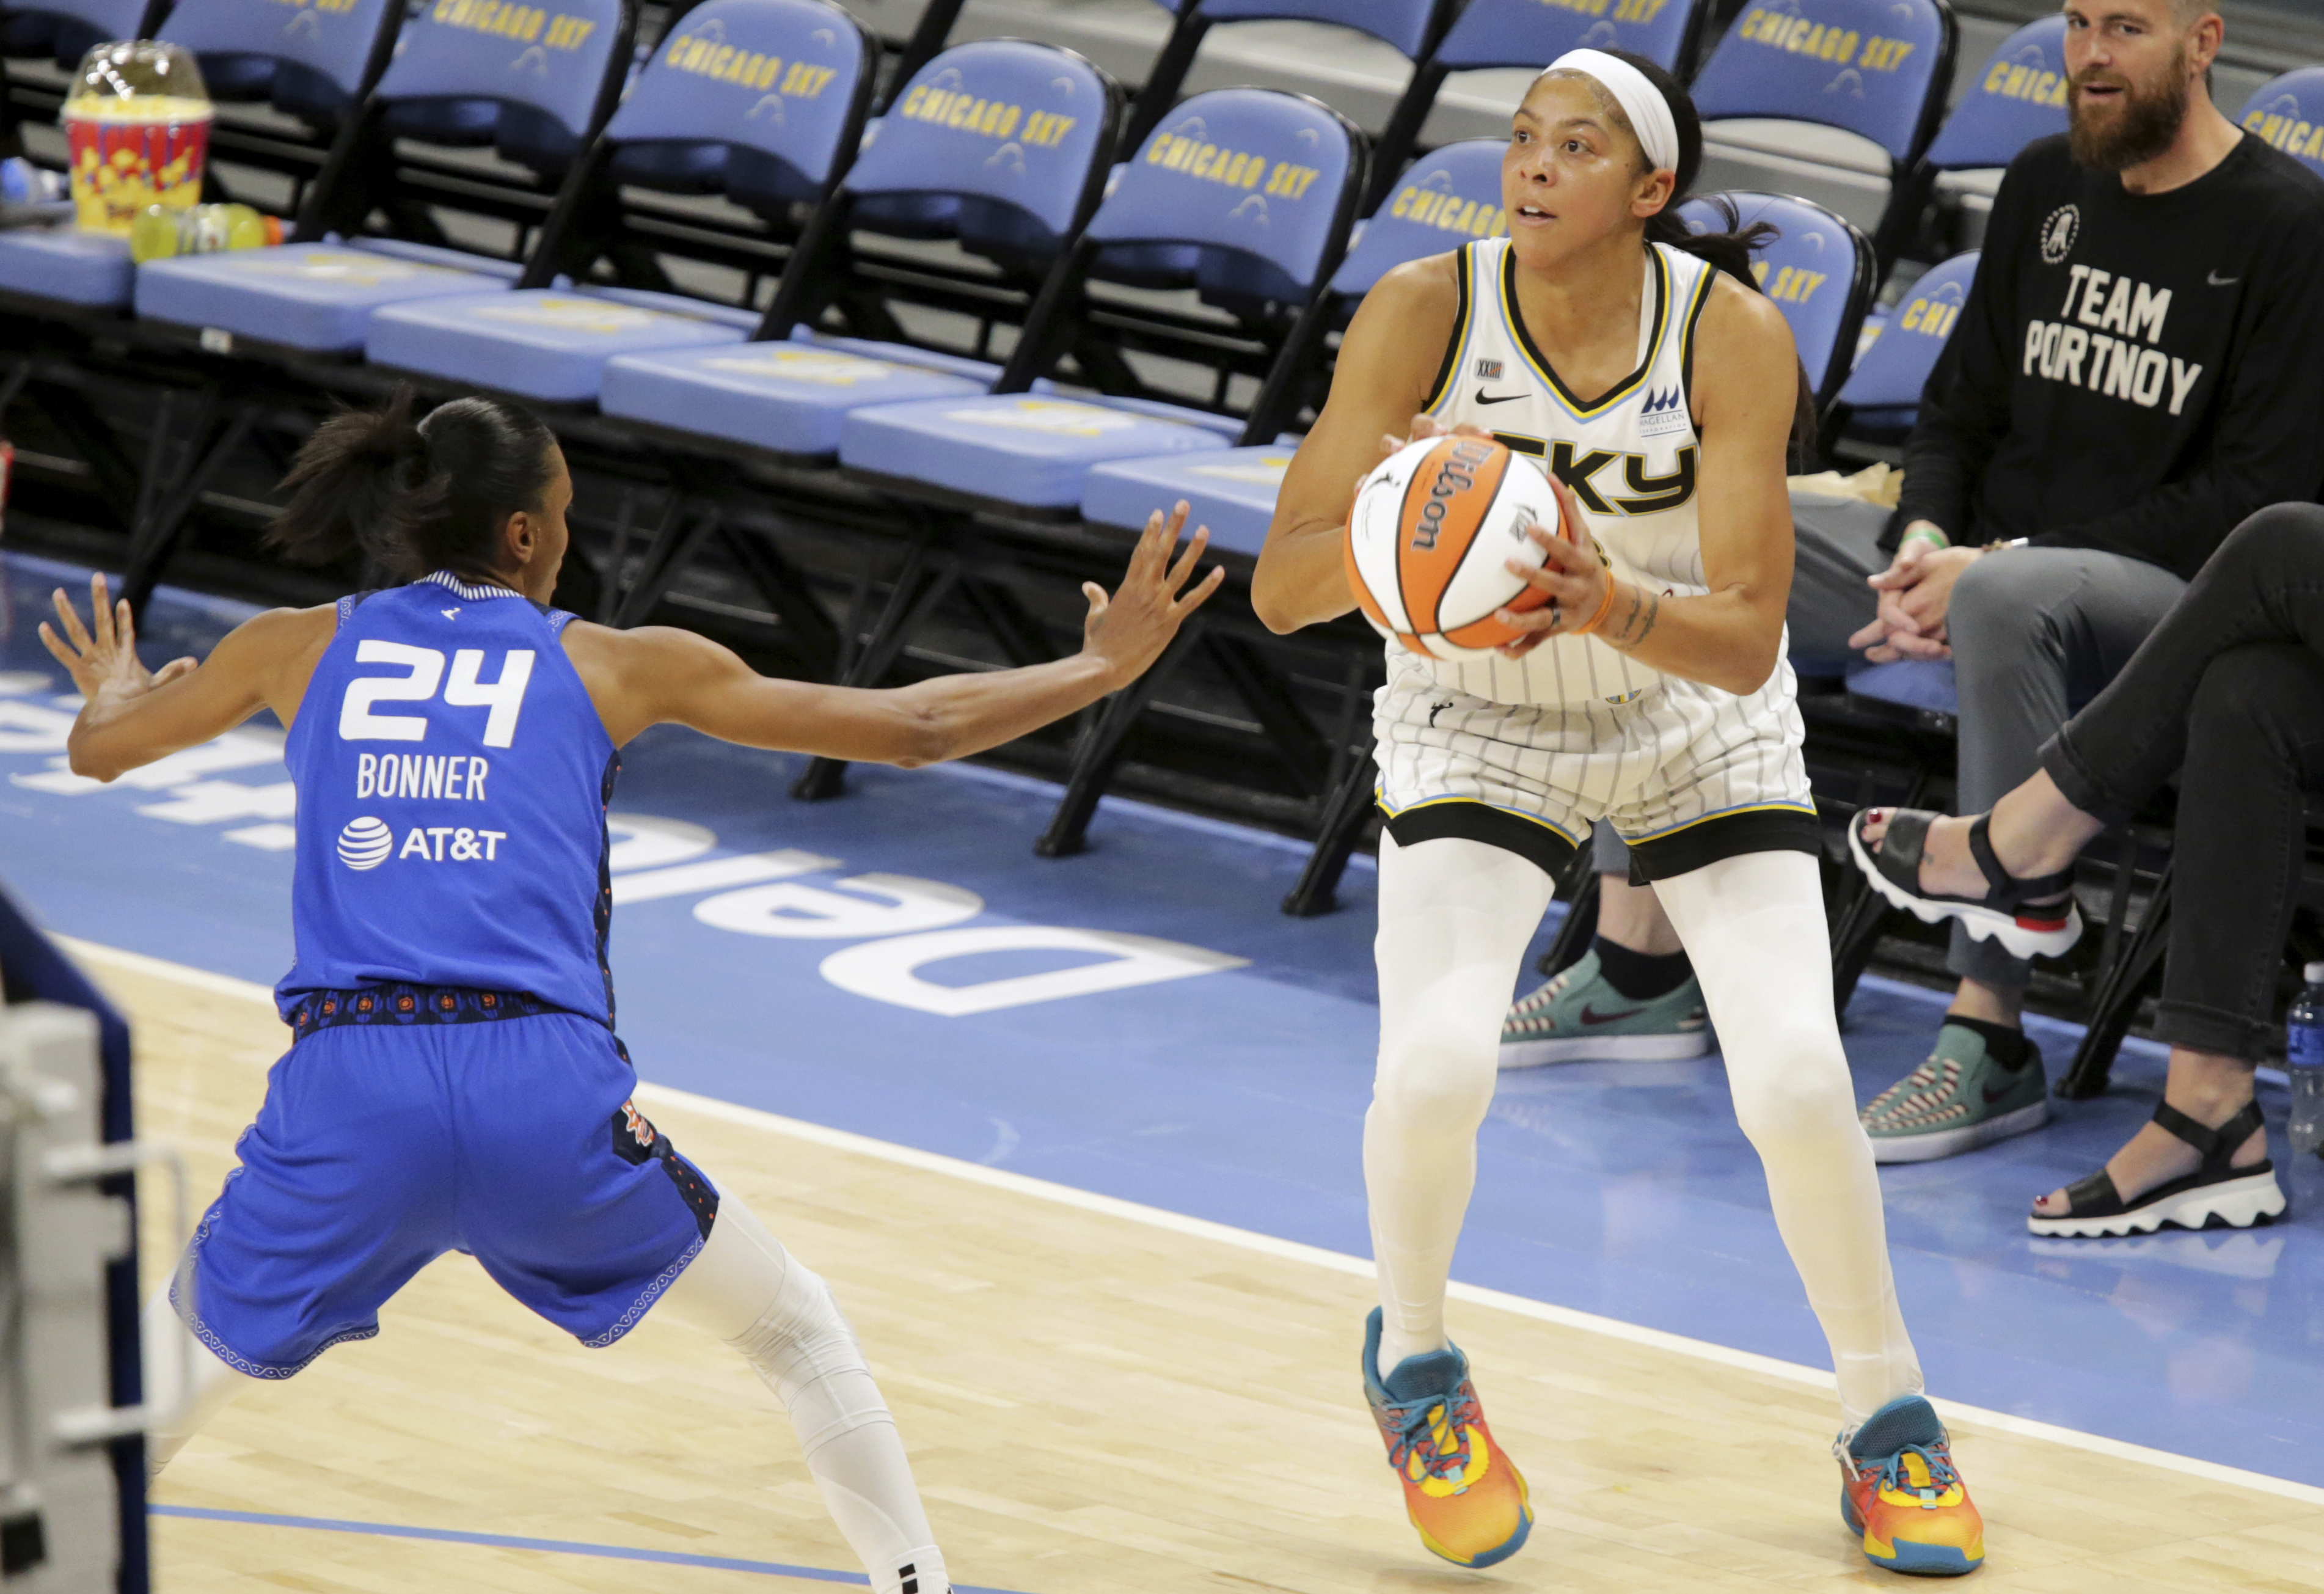 Chicago Sky's Candace Parker, right, looks to shoot during a WNBA game against Connecticut Sun Saturday, June 19, 2021 in Chicago. (AP Photo/Eileen T. Meslar) ORG XMIT: NYOTK